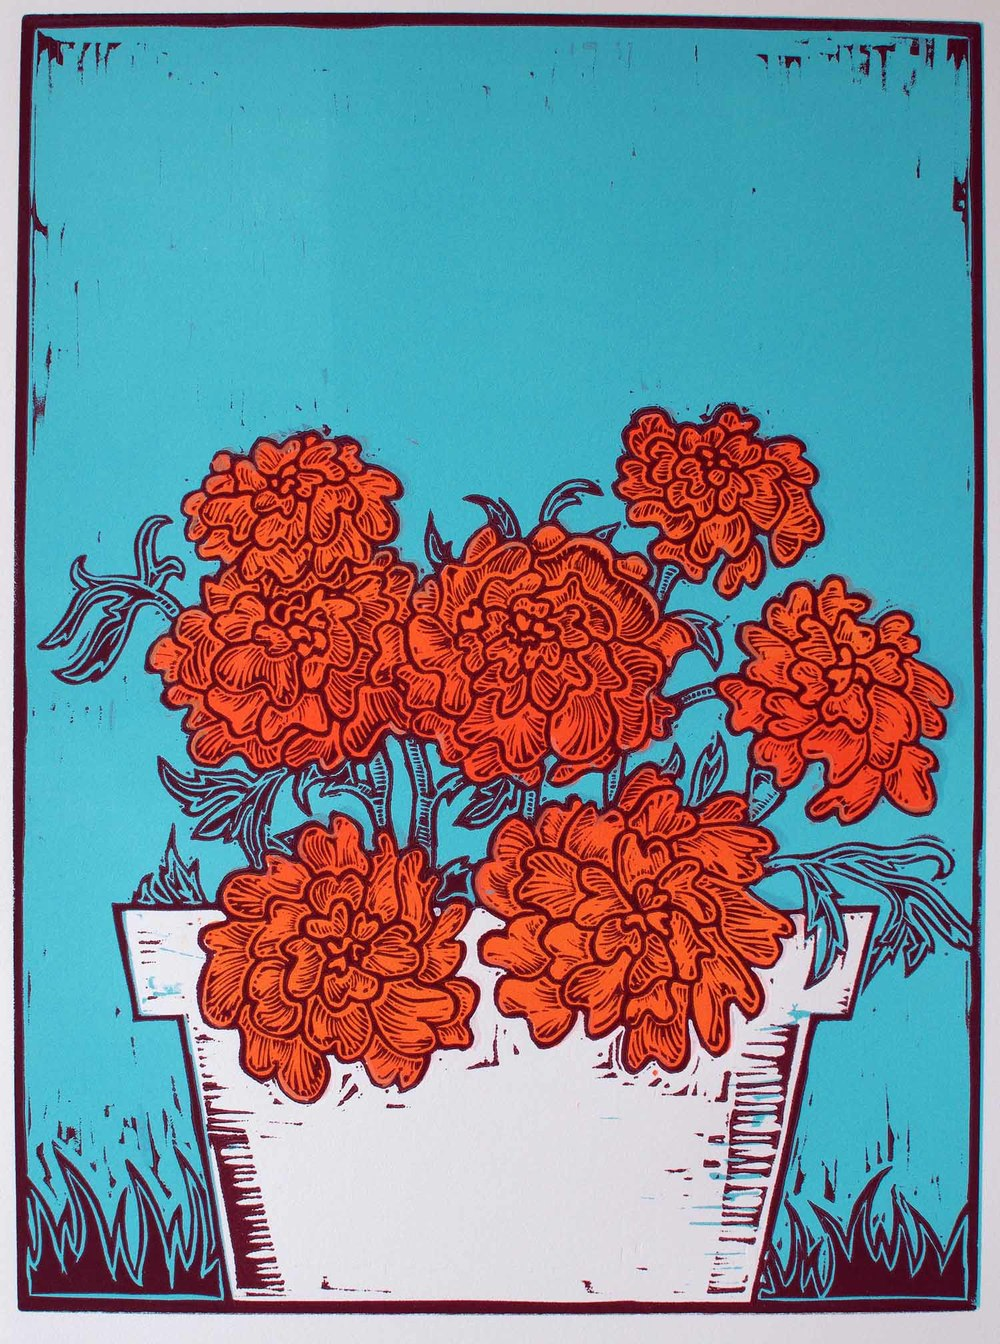 """Pot of Marigolds"" – original linocut print limited edition of 60, 40 x 30 cm."